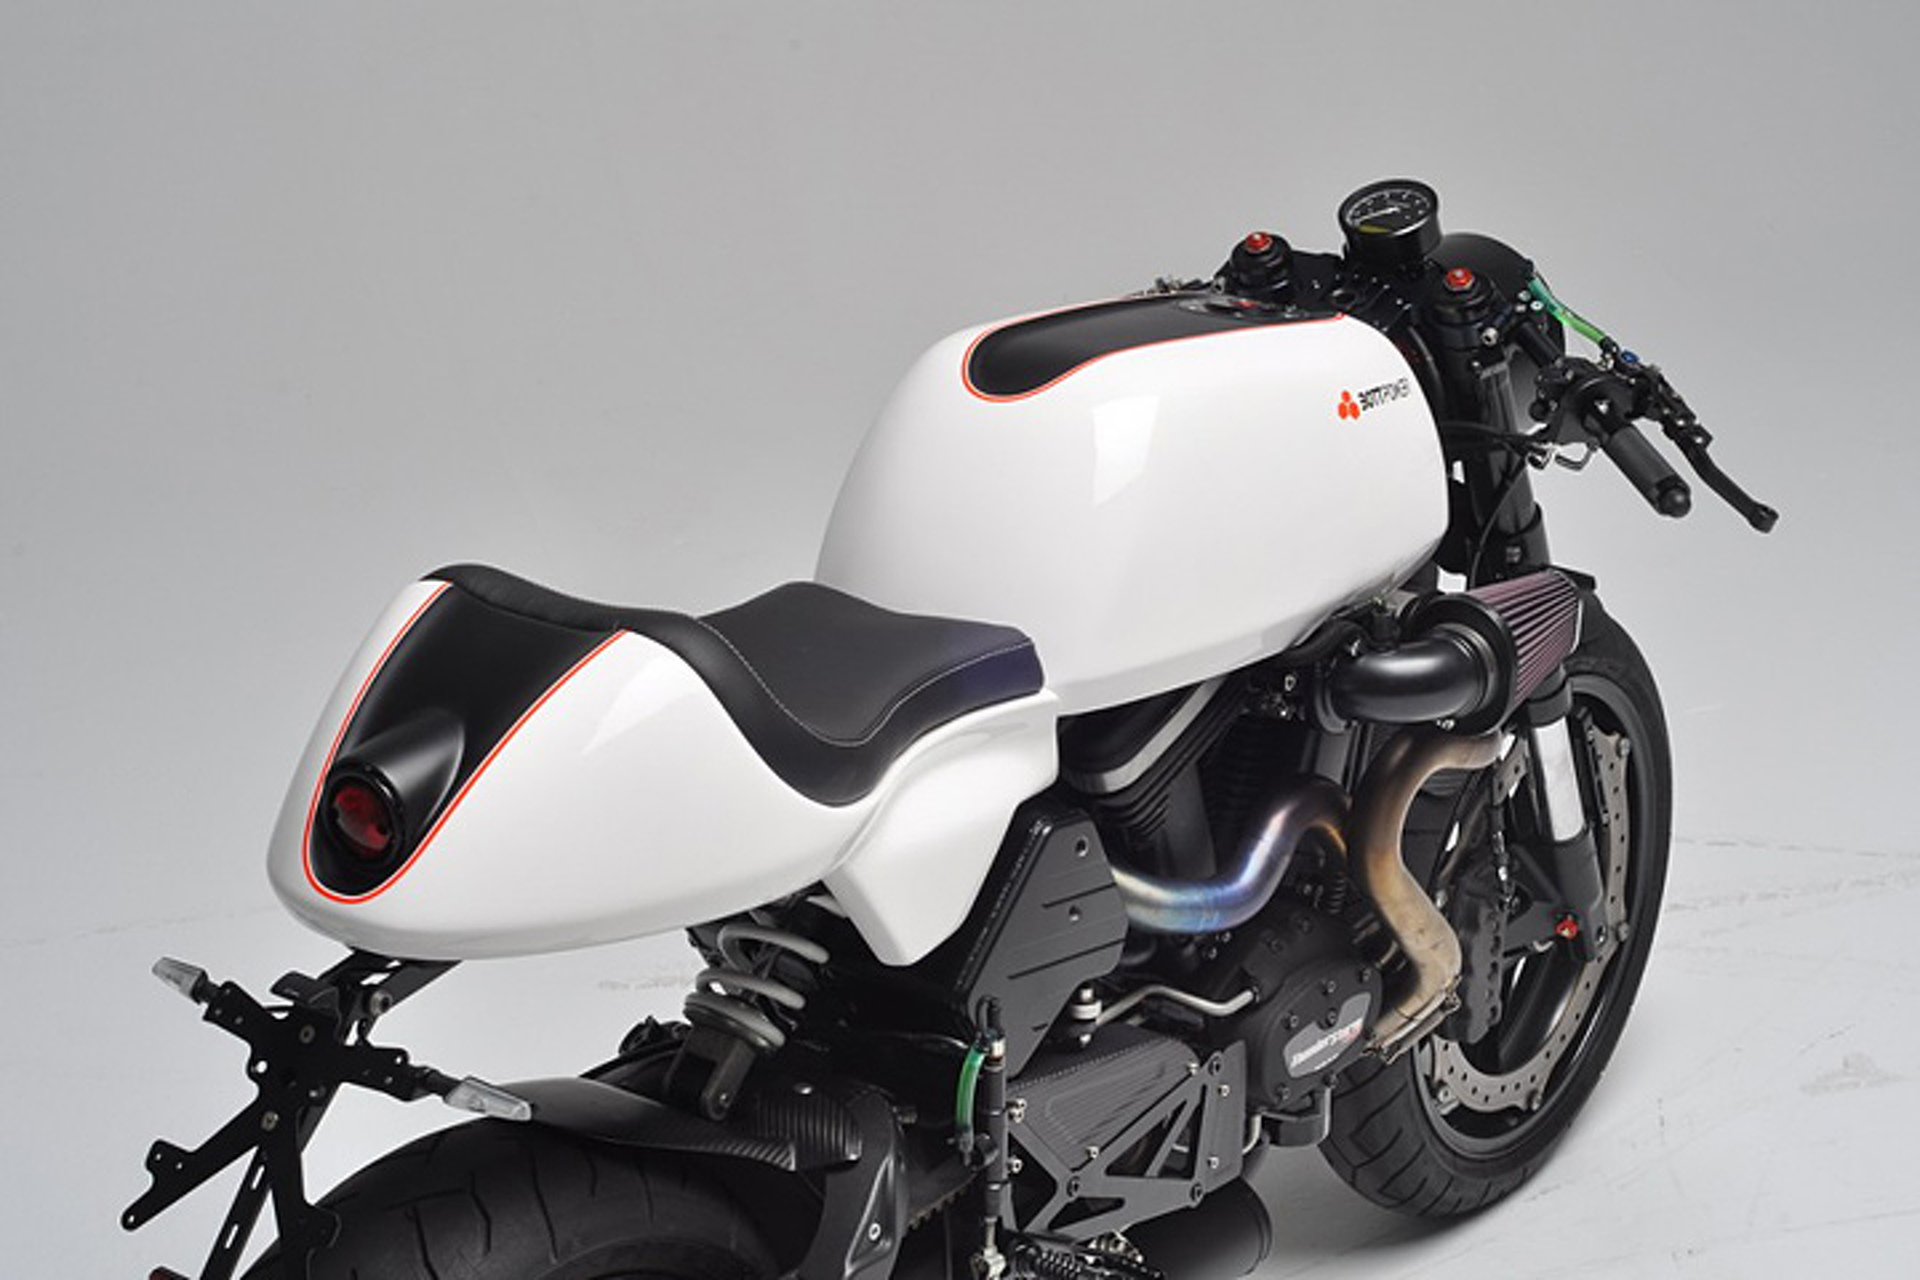 Bottpower Turns the Buell XB12 Into a Futuristic Cafe Racer